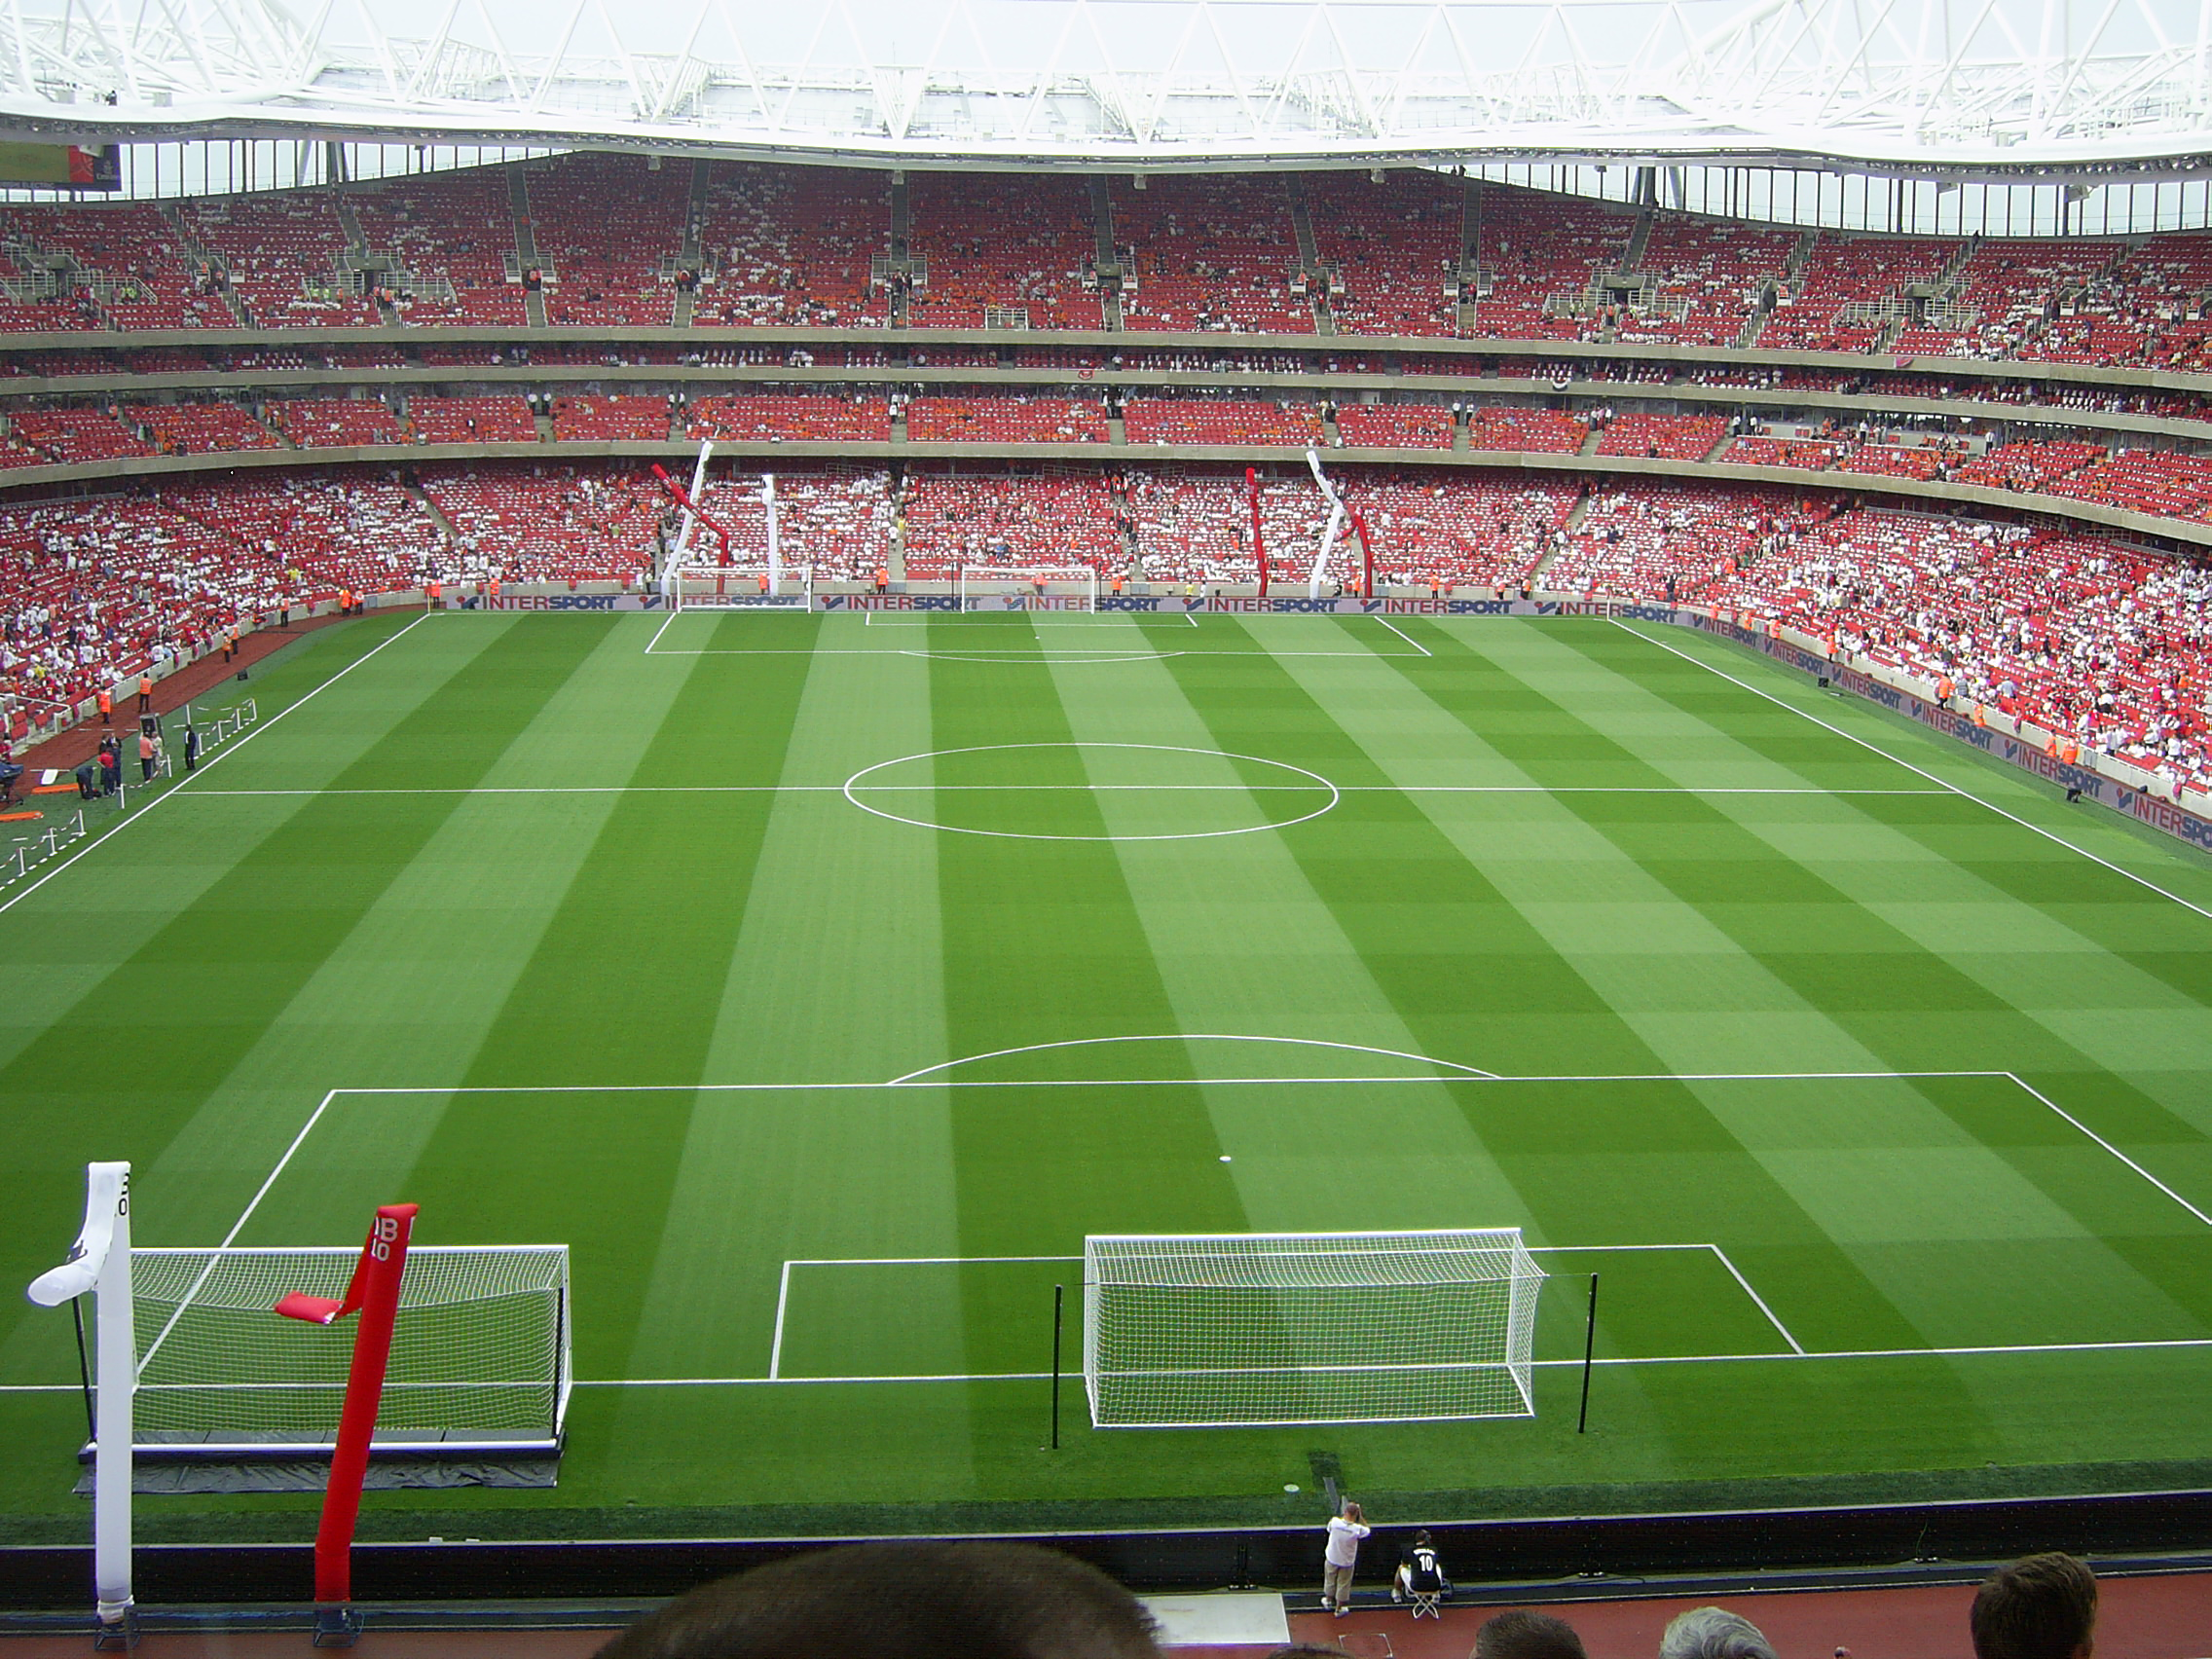 Emirates Stadium; built at the expense of the career advancement and the ability to win trophies of One Man!